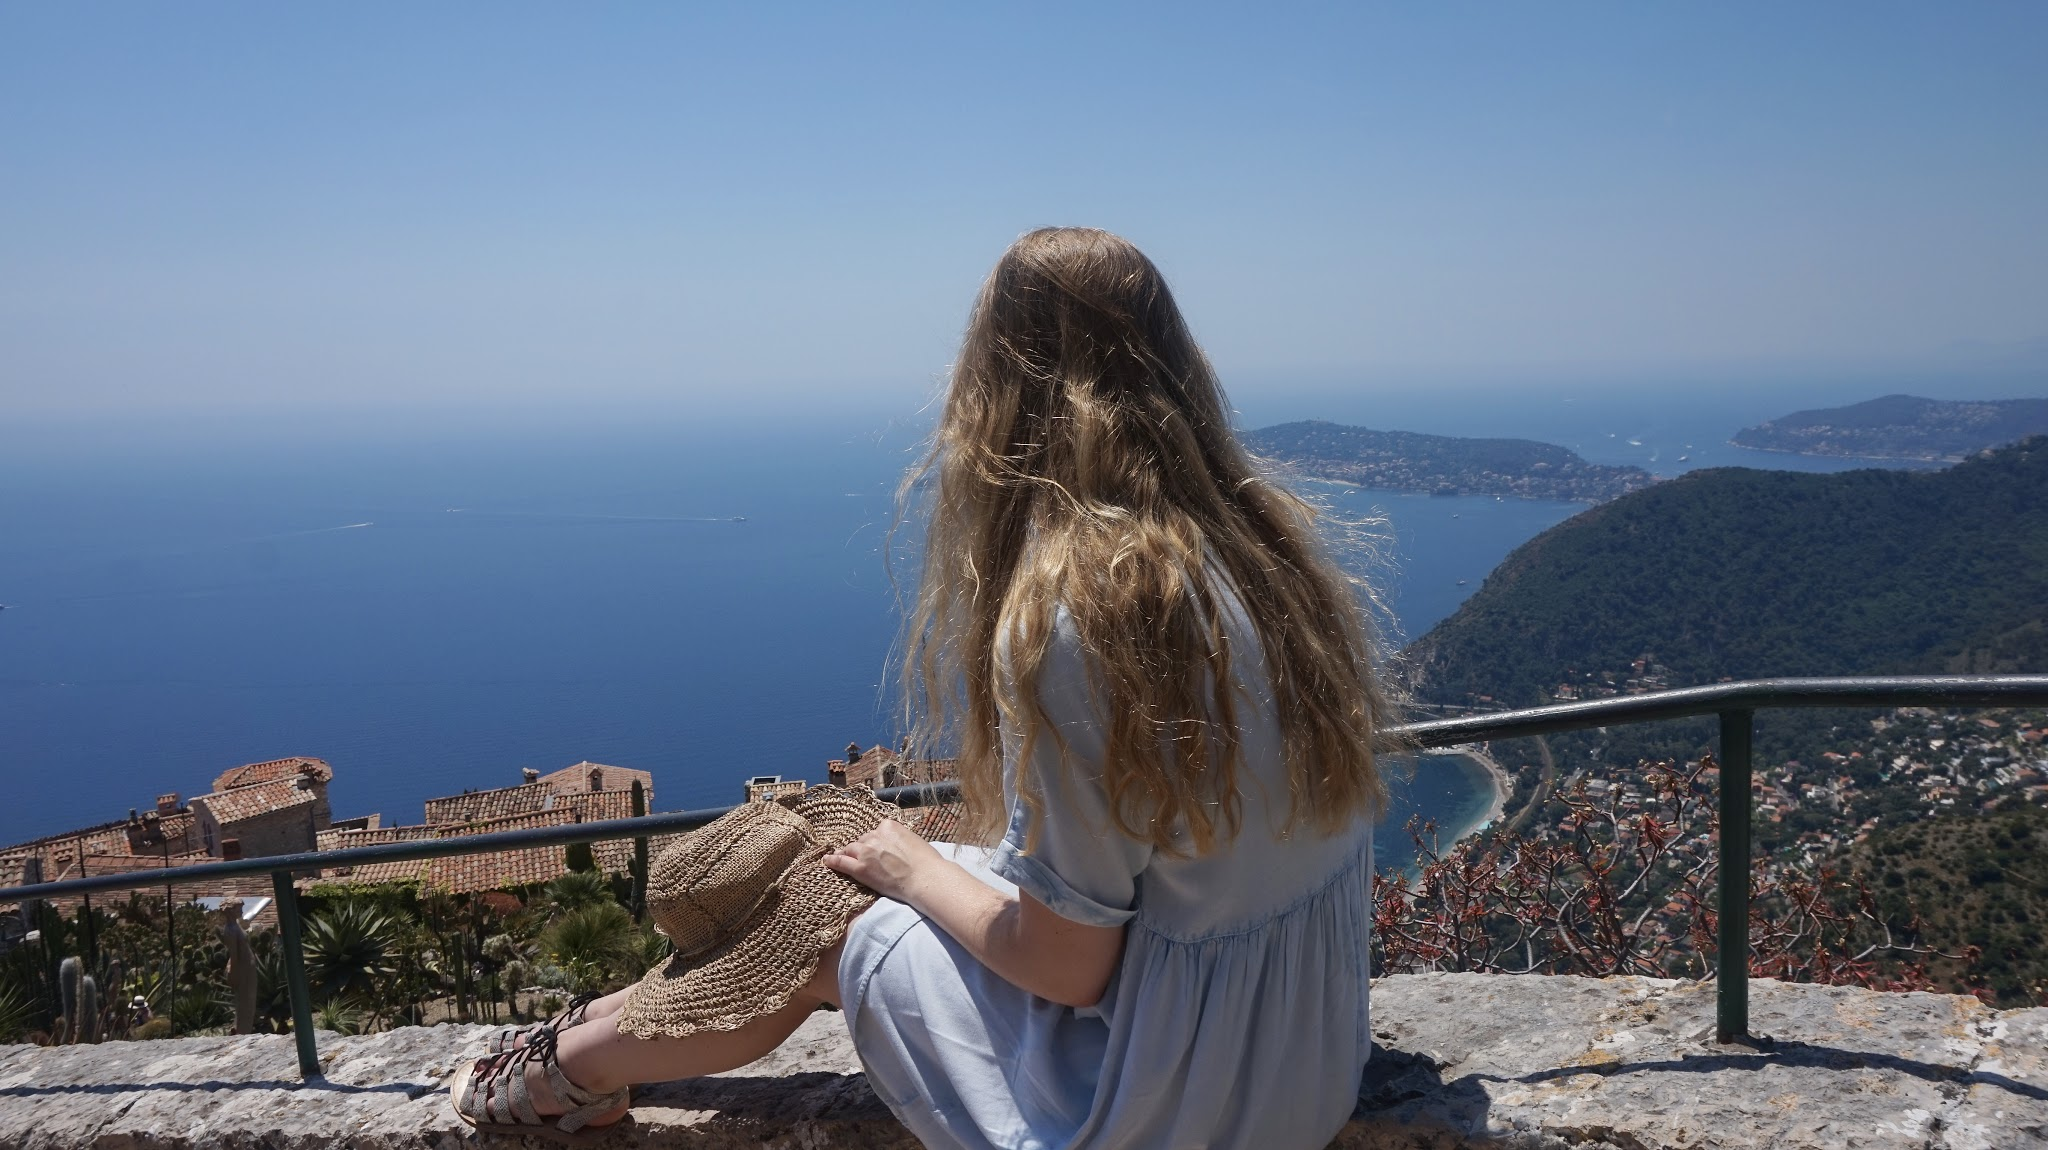 woman sits on a stone ledge overlooking the red rooftops, botanic plants and the sea